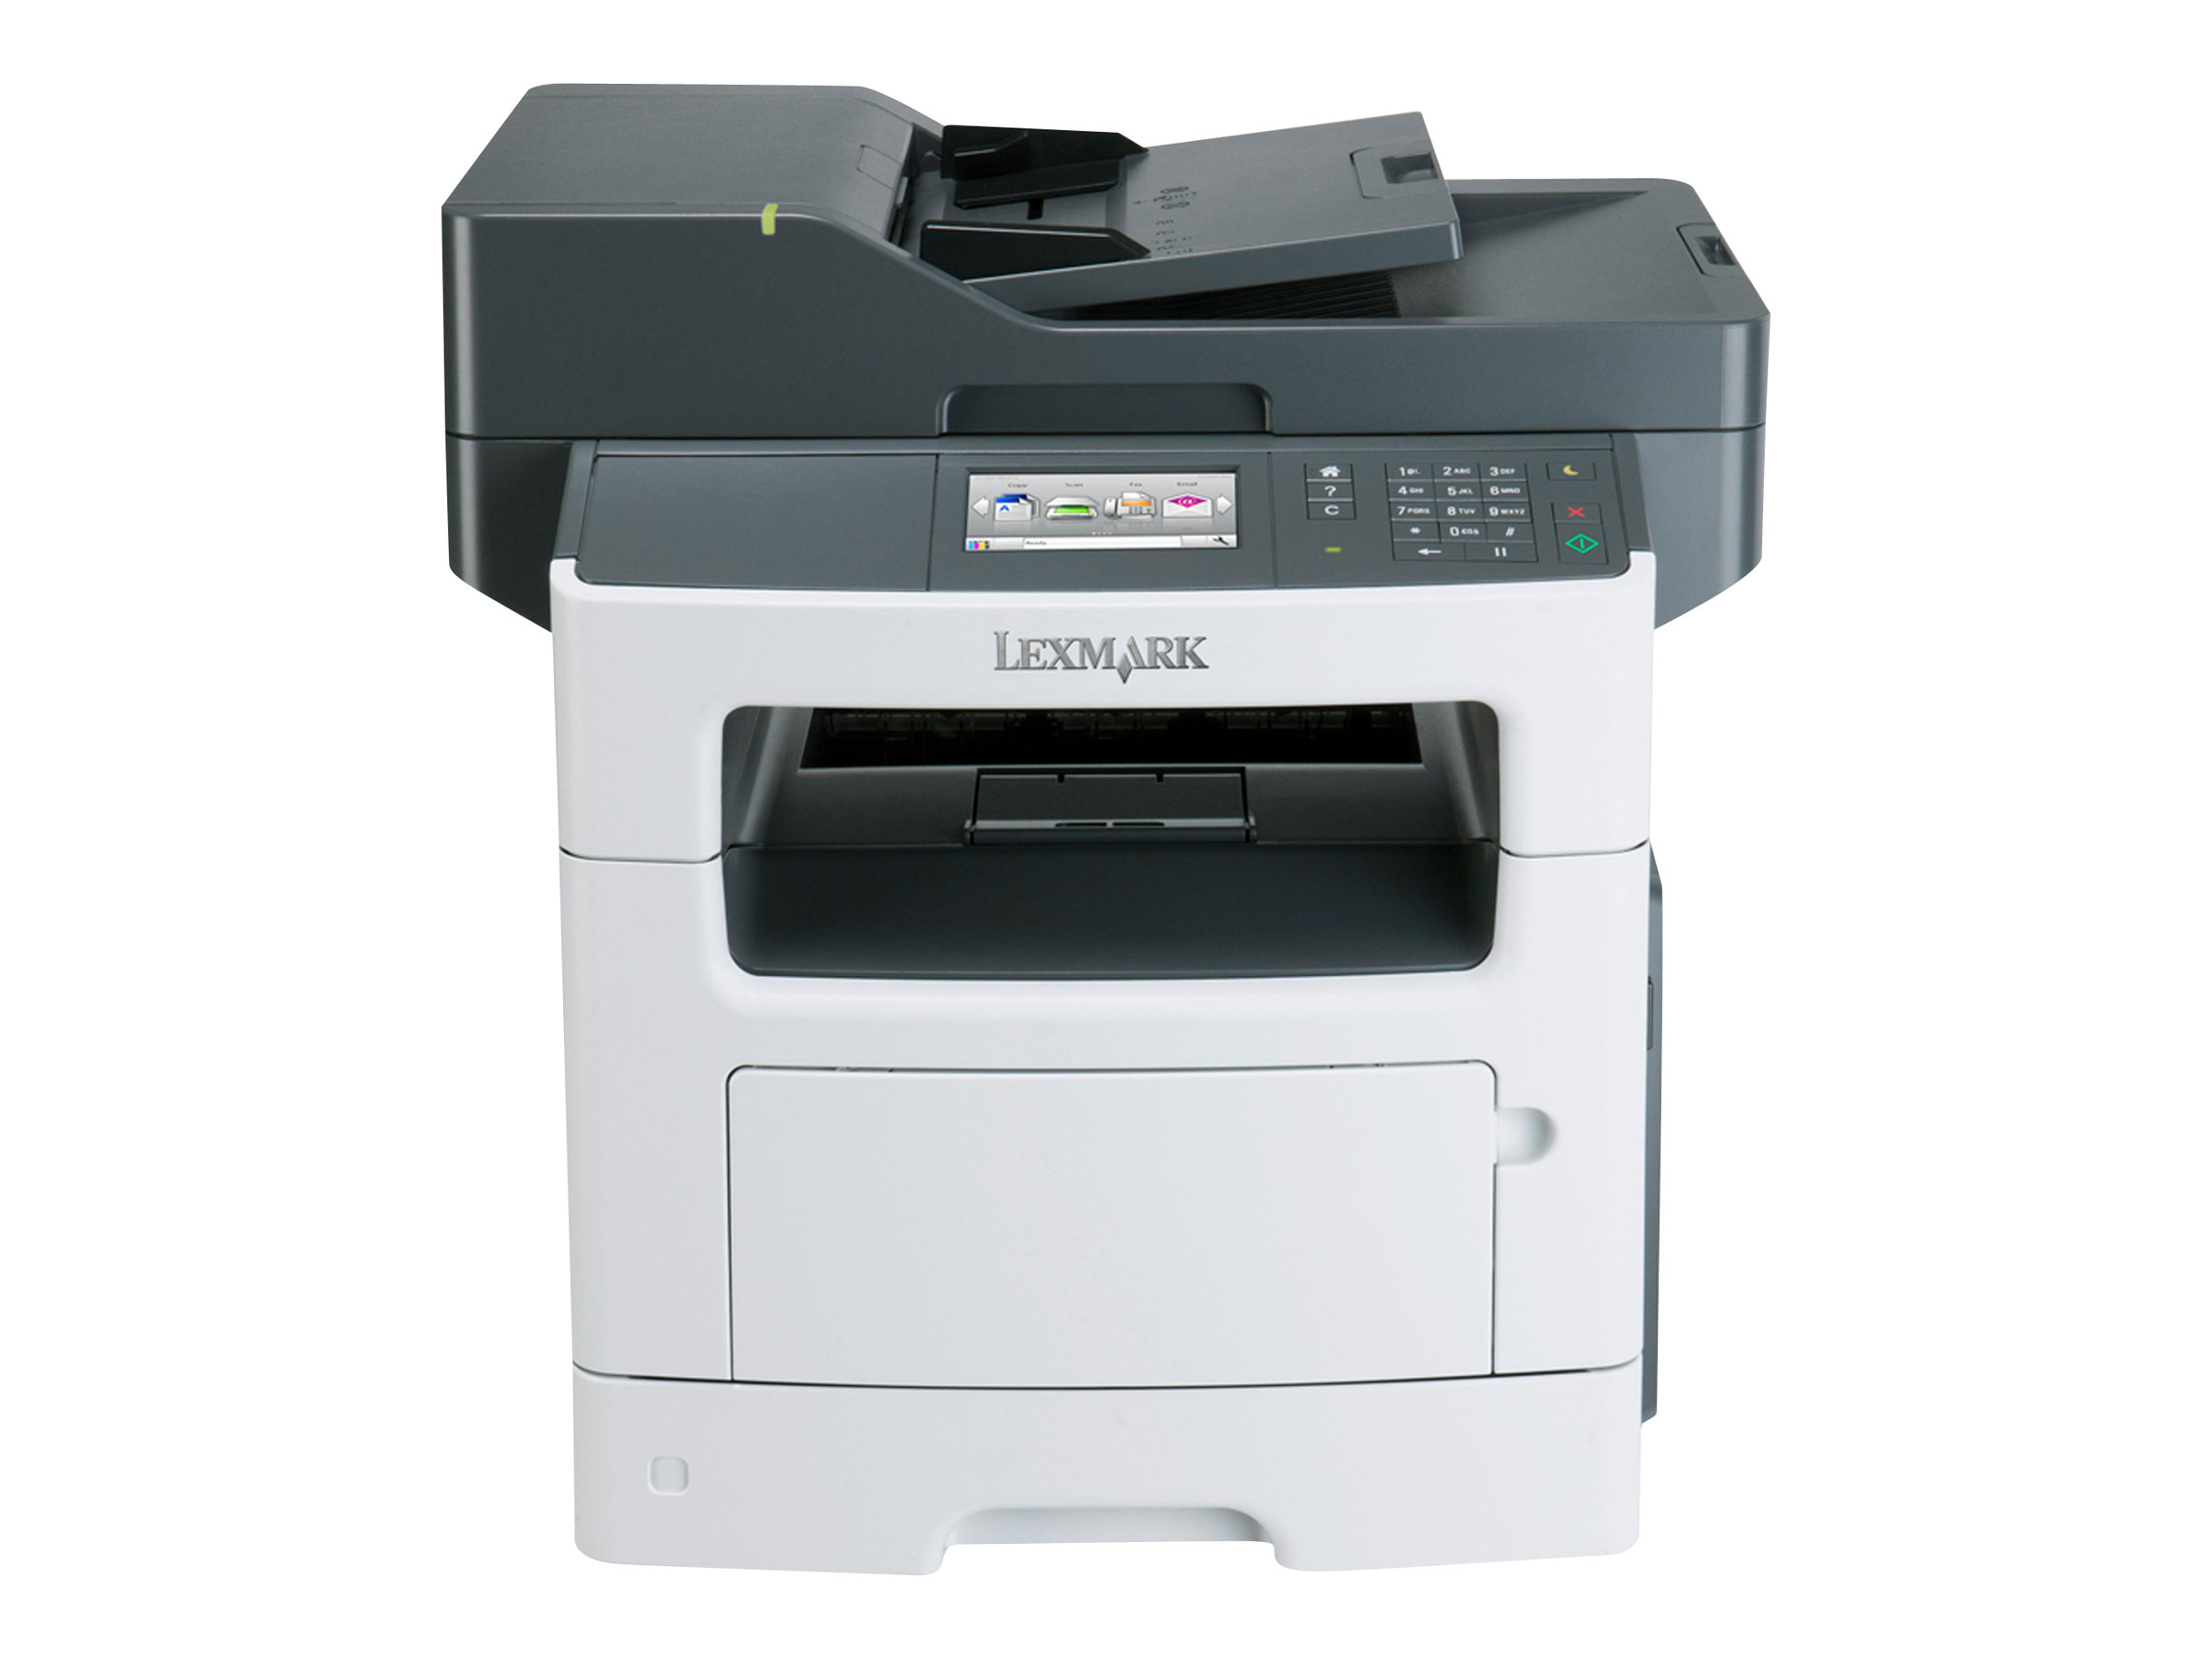 Lexmark MX610 MFP PCL-XL Drivers Windows 7